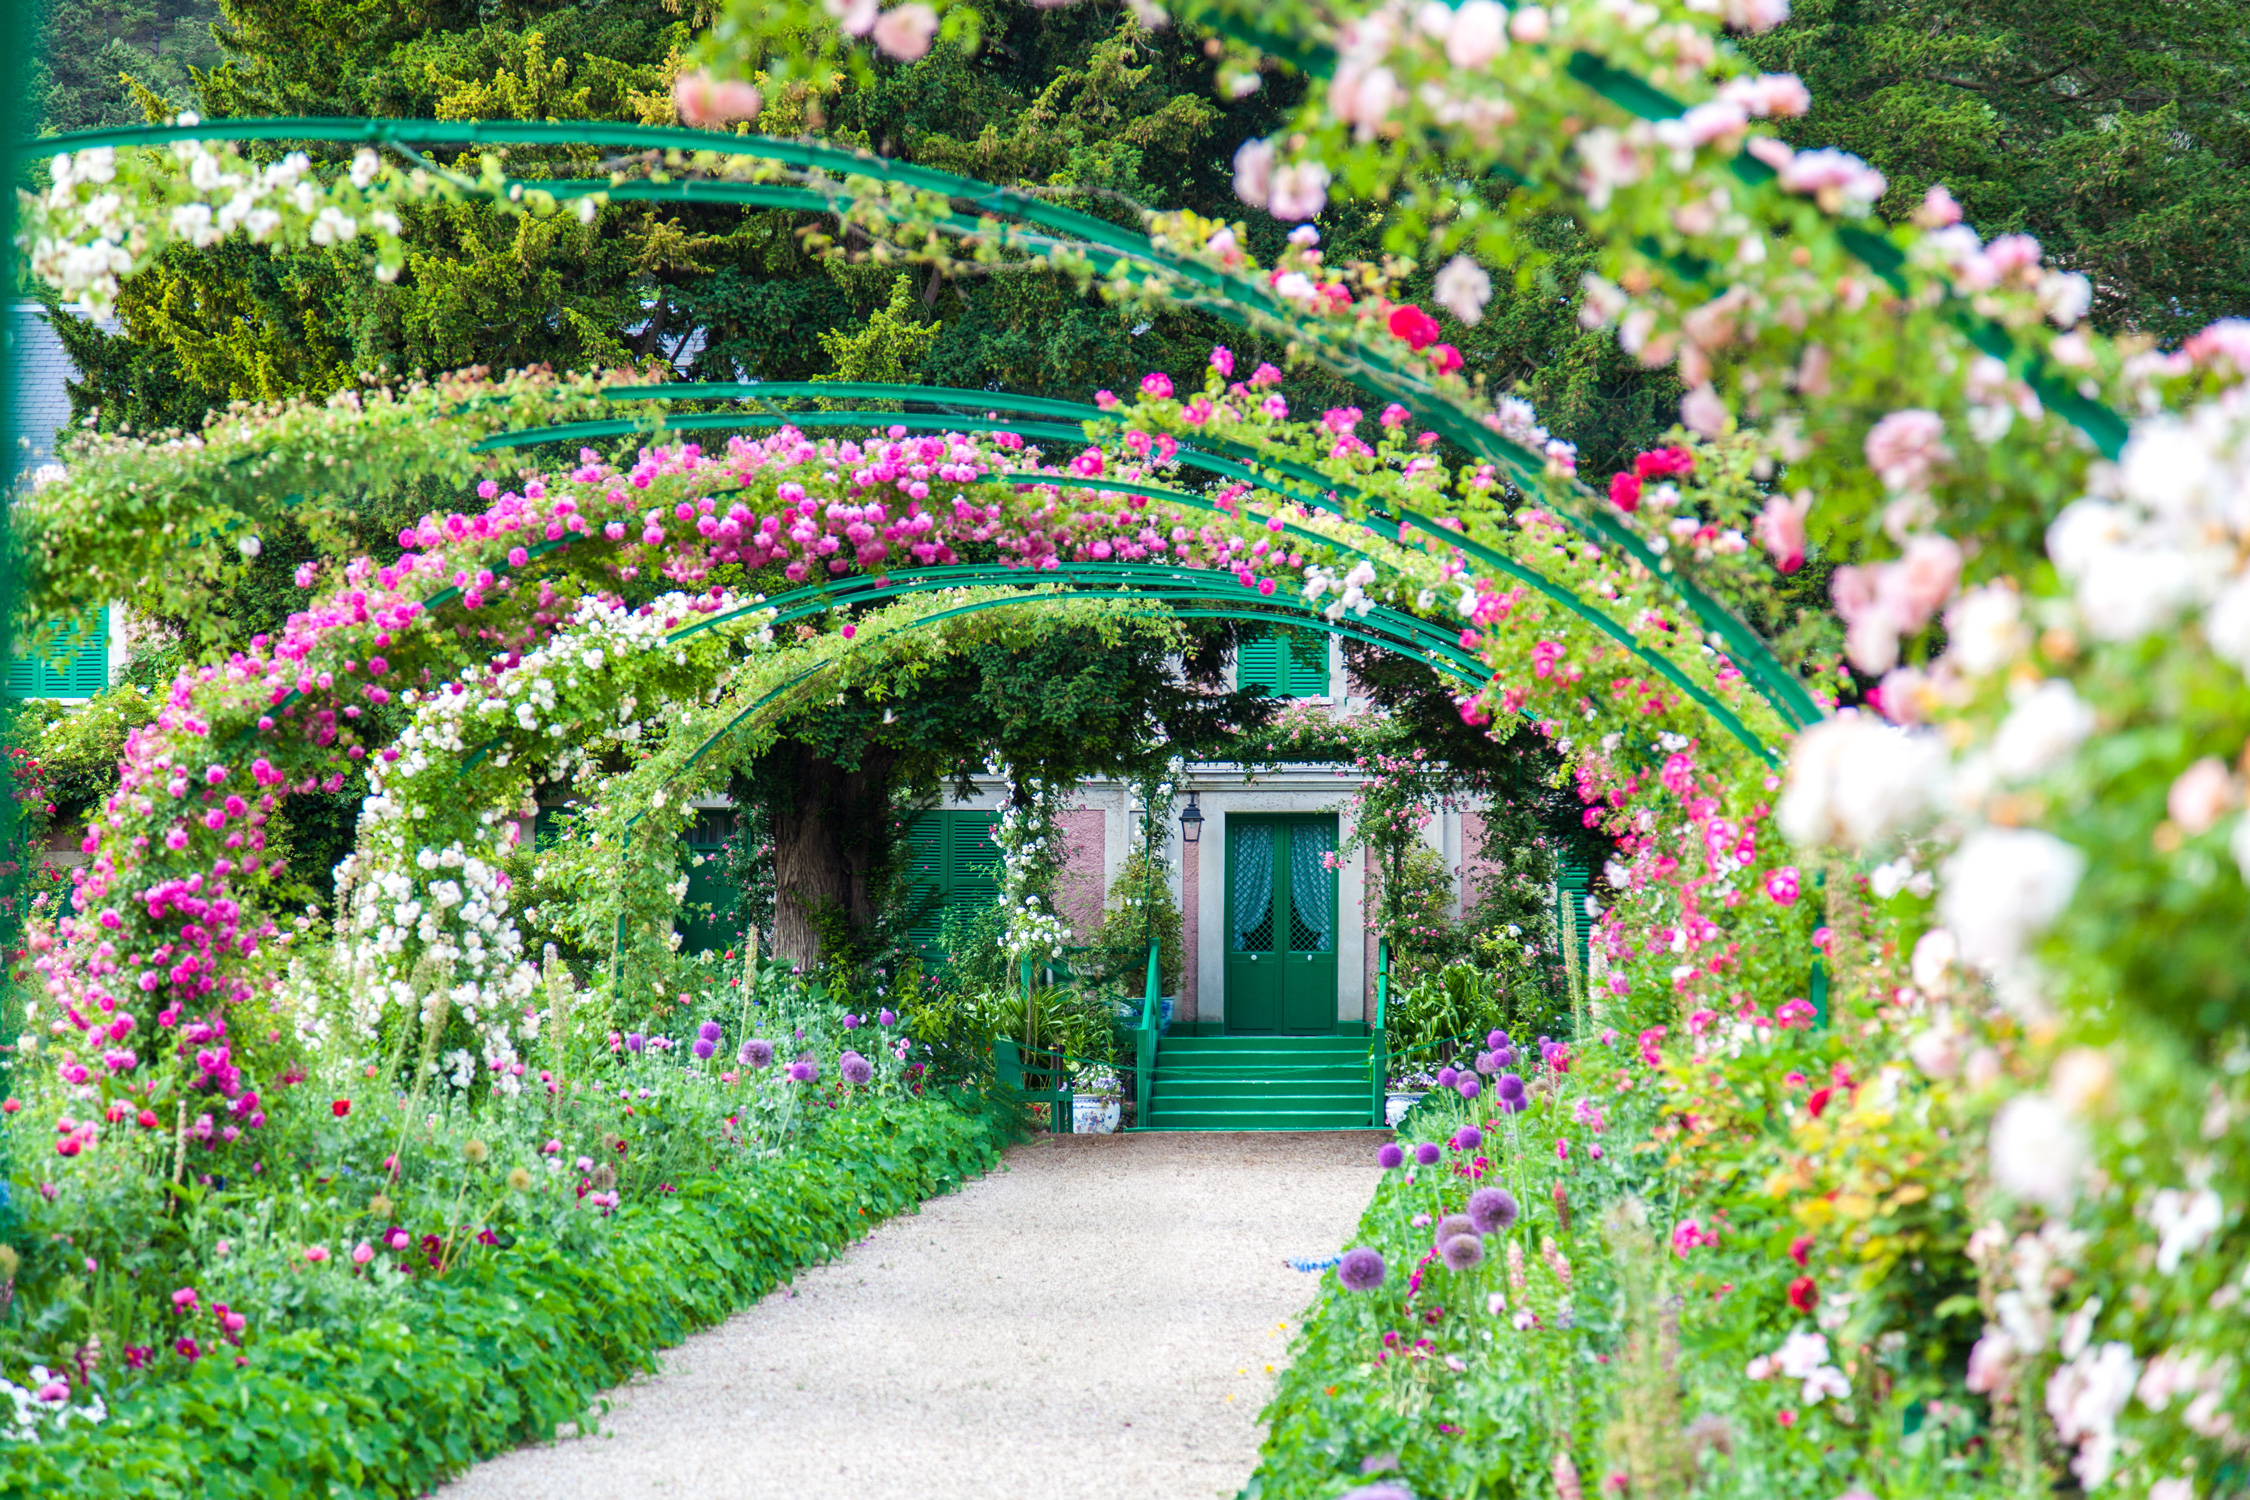 Les jardins de la fondation claude monet giverny d lices for Jardines monet